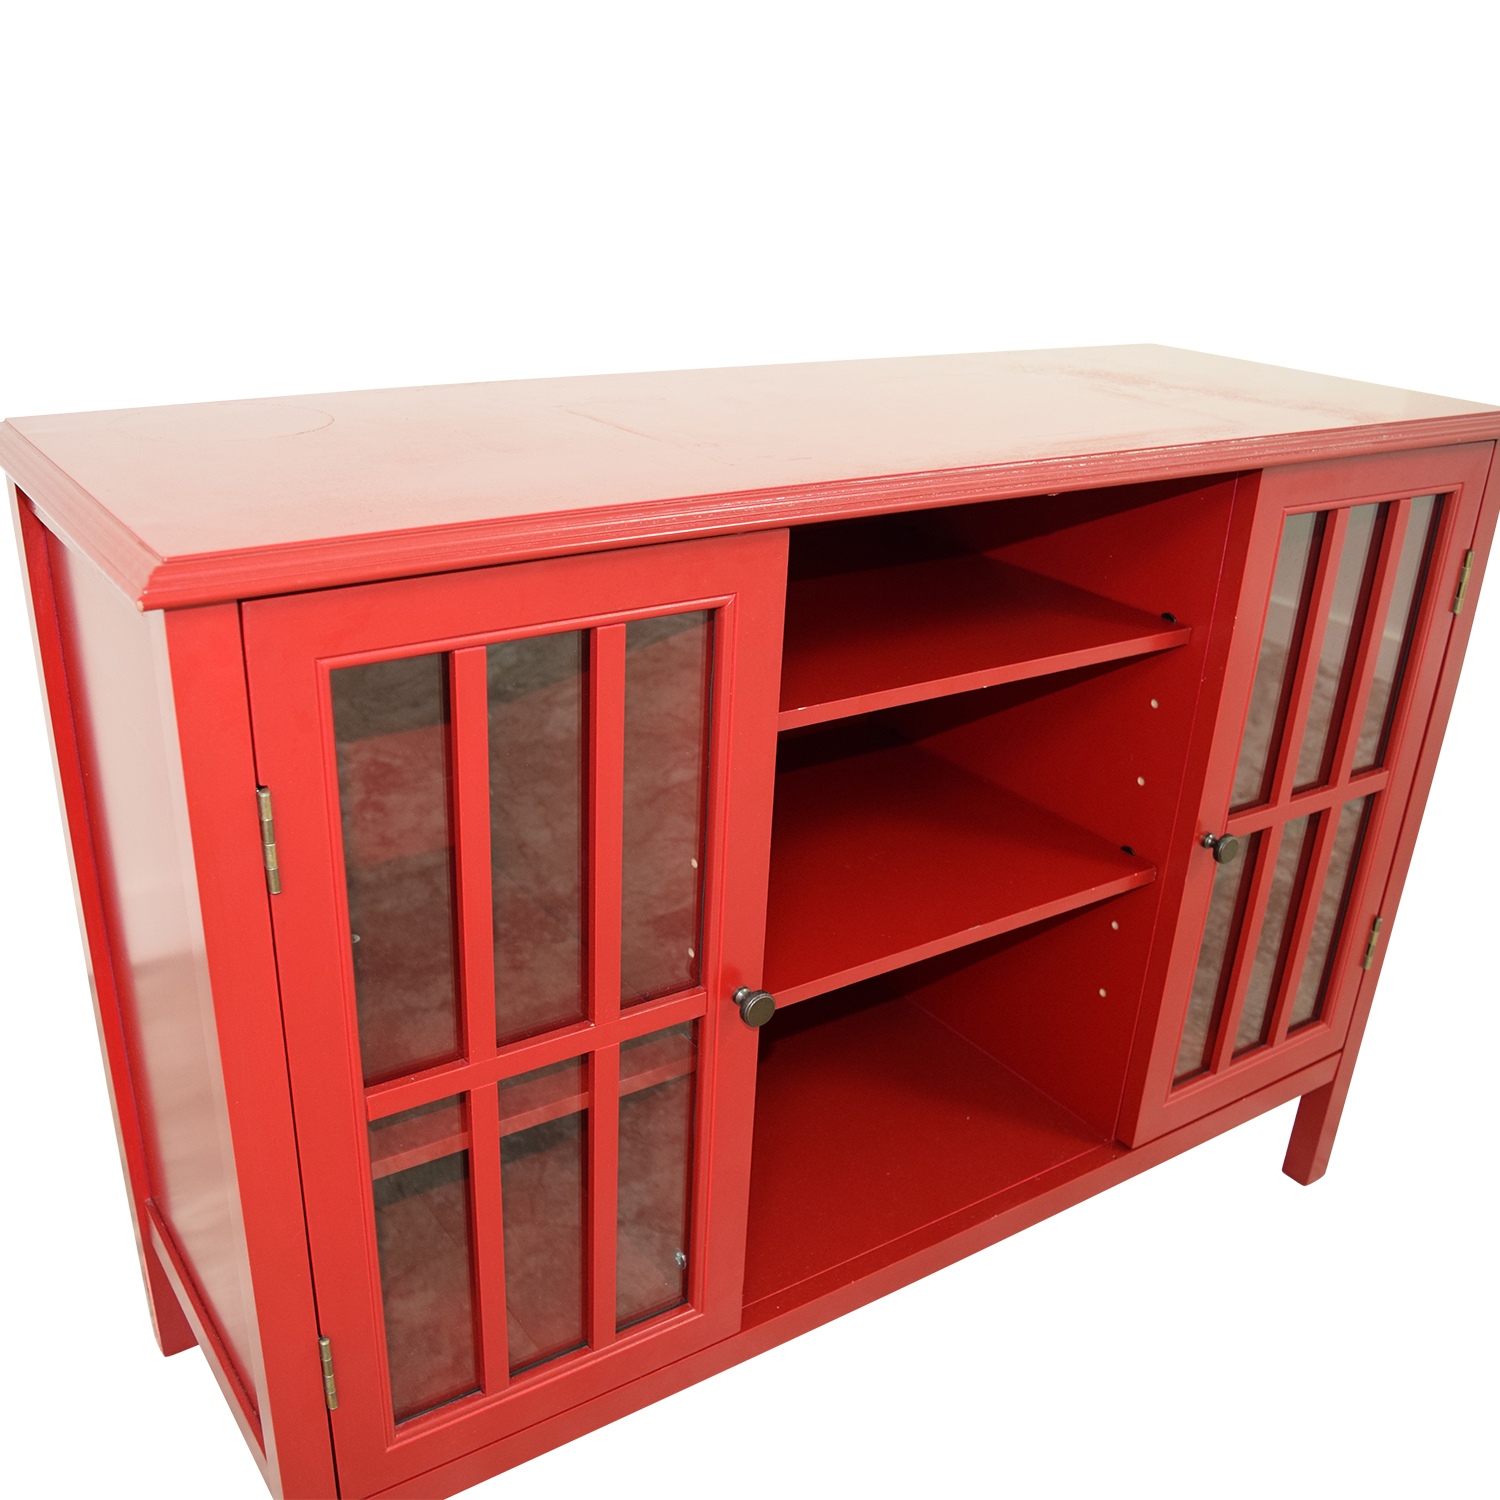 89 Off Target Target Windham Two Door Cabinet With